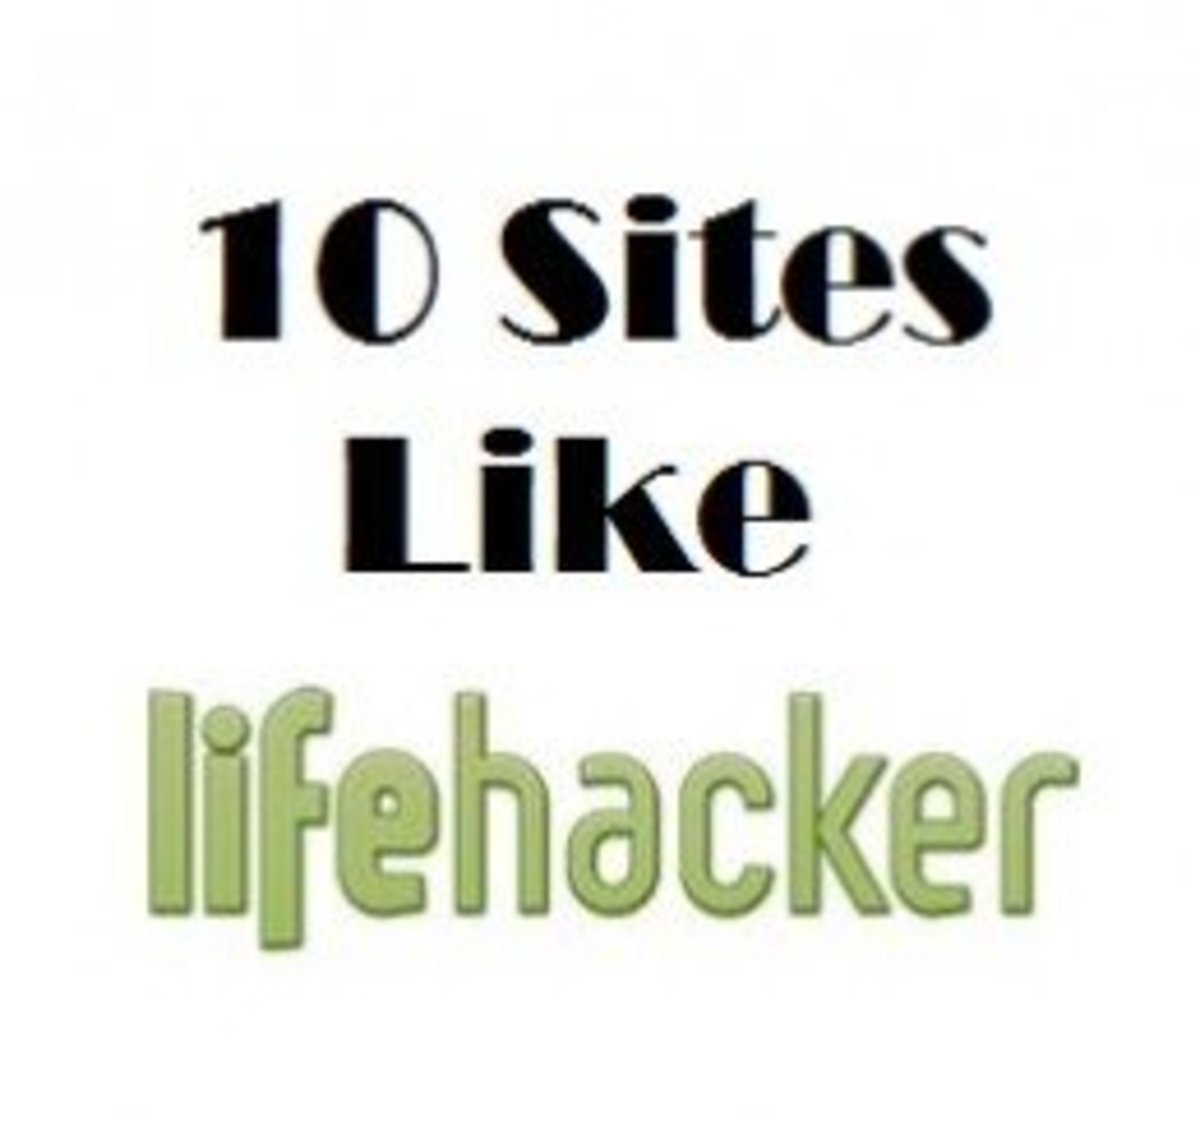 10 Sites Like Lifehacker - Websites that Make Life